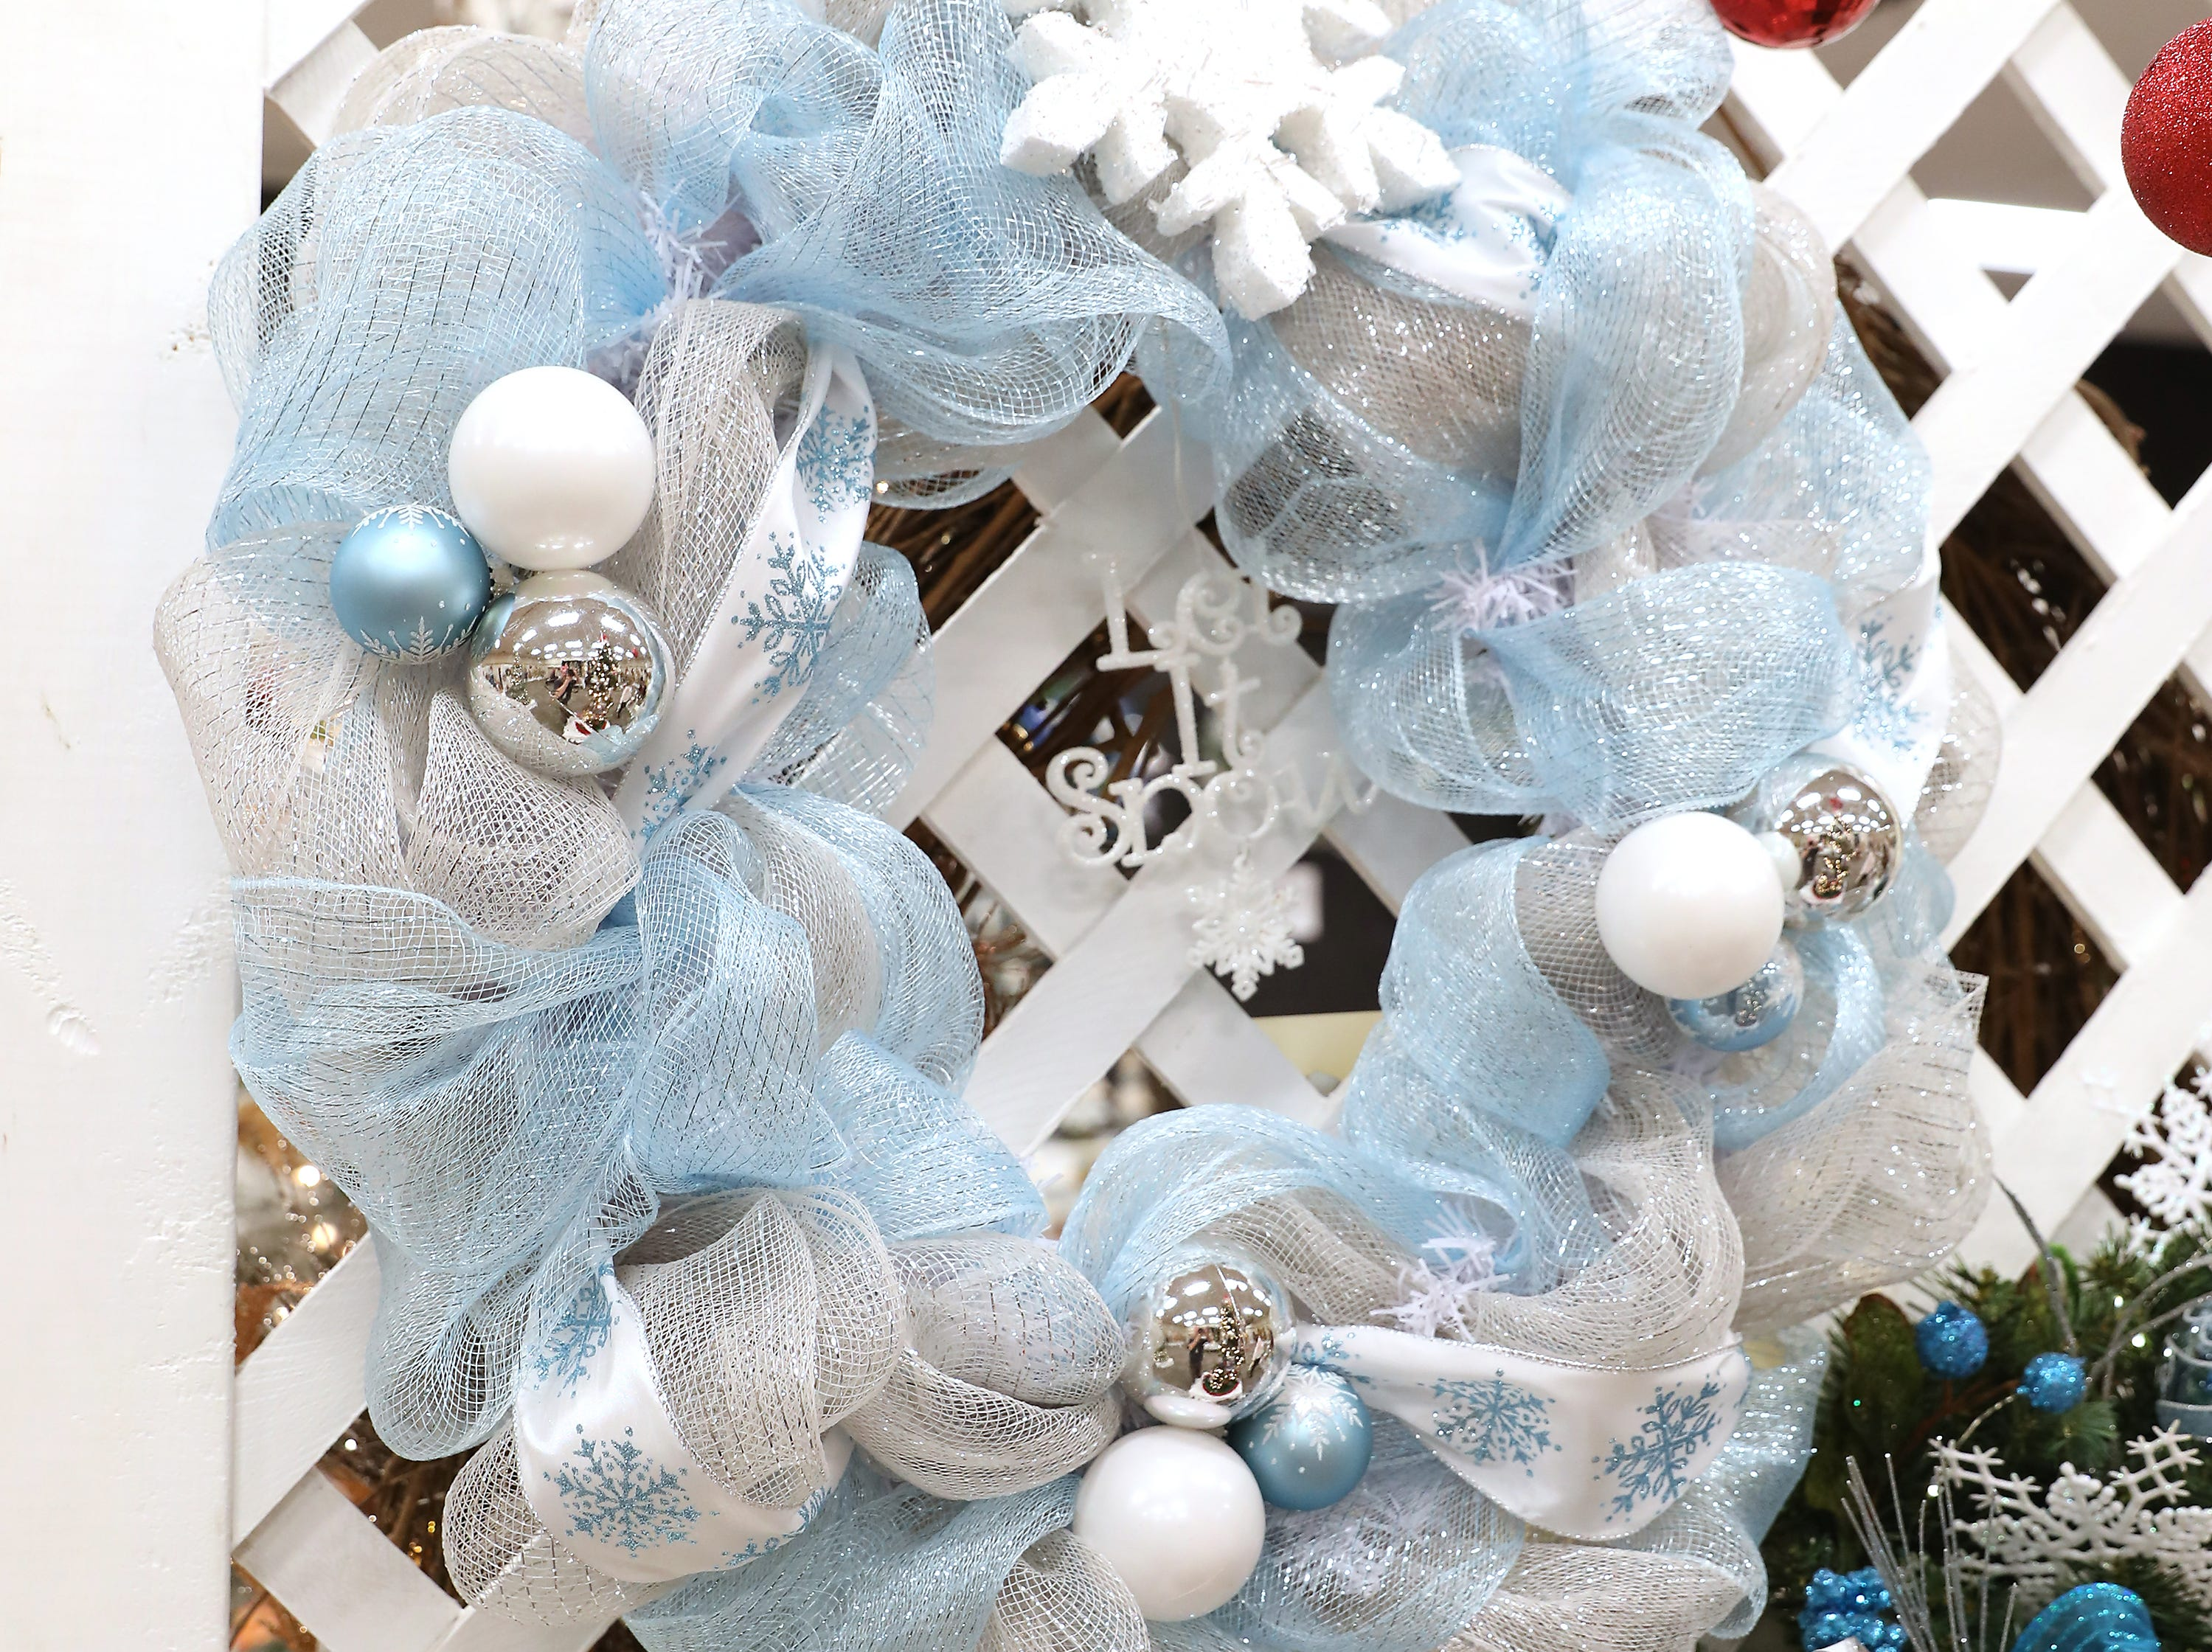 39	10:15 AM	Lisa at Liberty National	Wreath	Let it Snow!	A blue, silver and white winter wreath decorated with snowflakes and bulbs.  This wreath can stay up all winter long.		$50 gift card to Alexia at Clound 9.